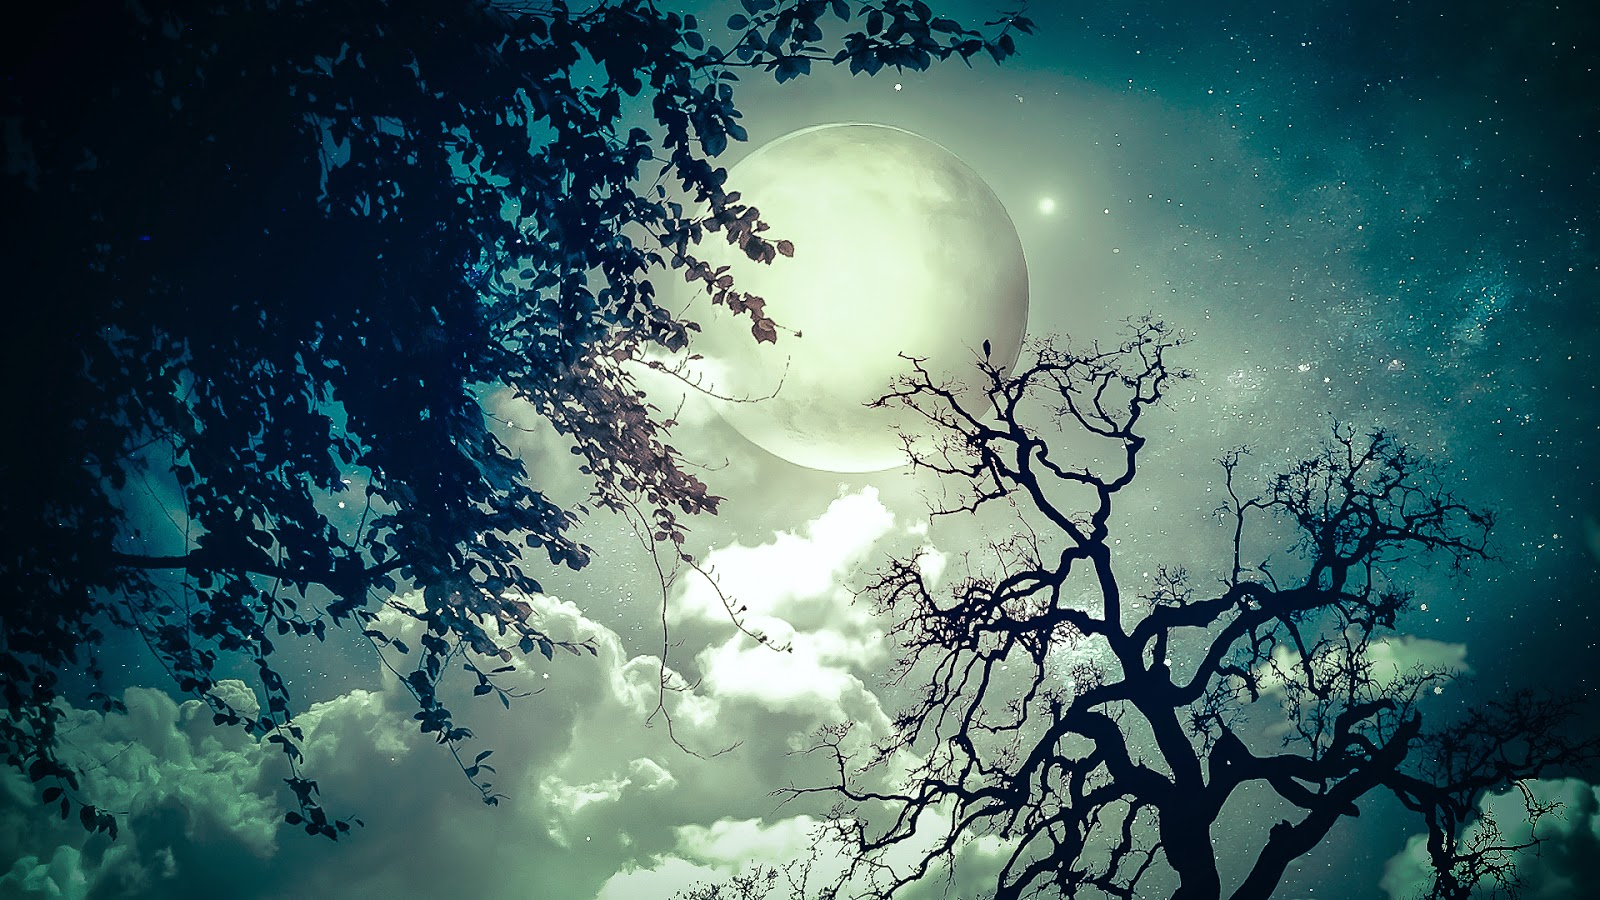 sky-with-moon-at-night-with-trees-image.jpg